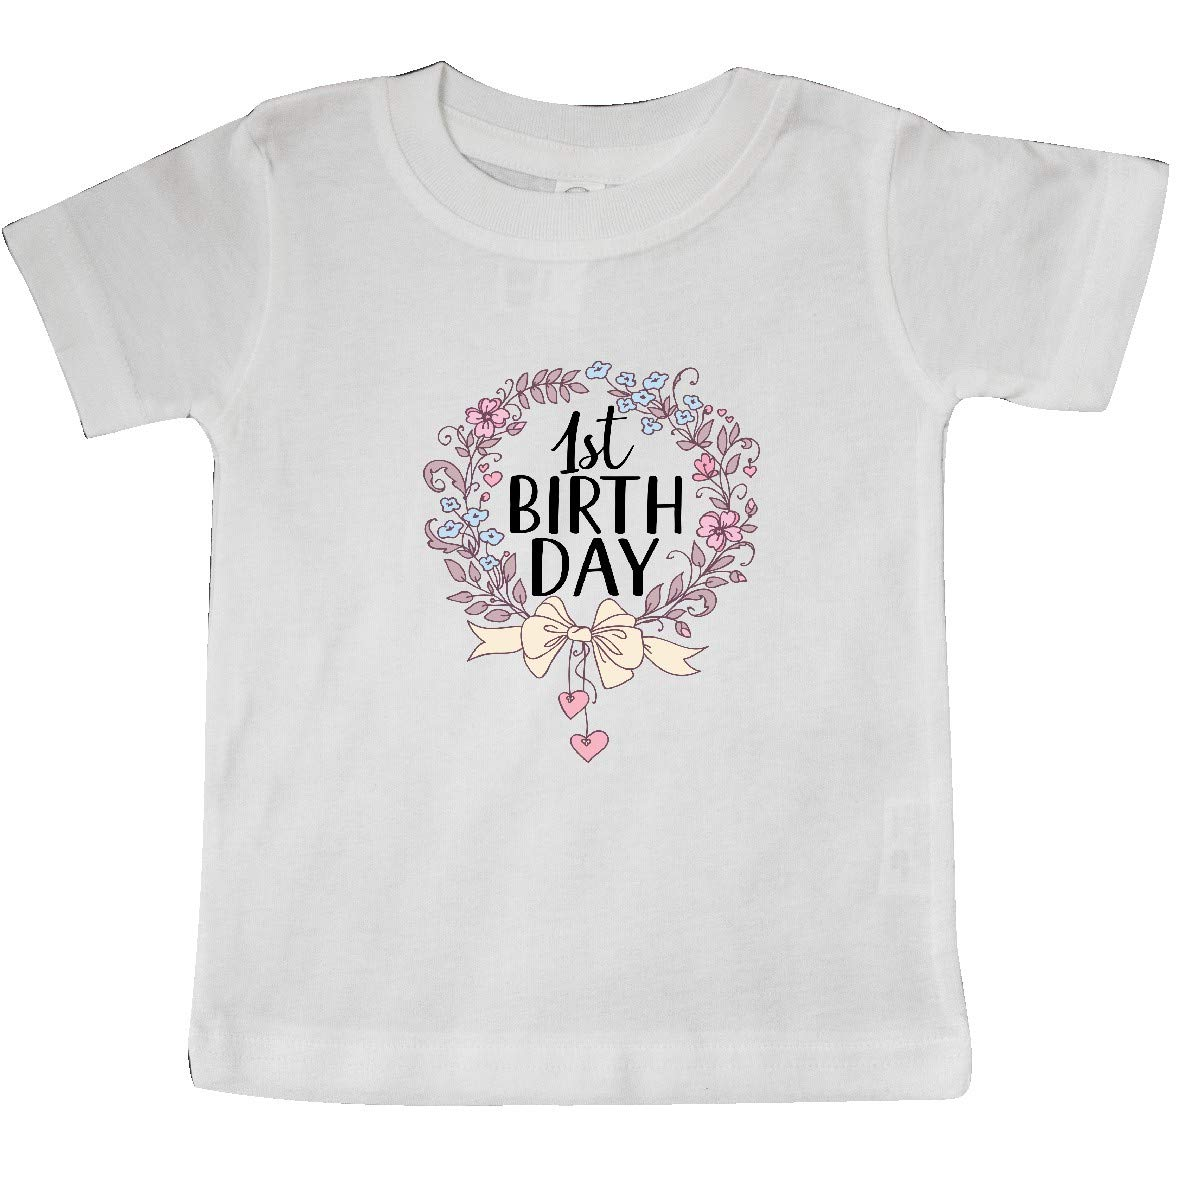 inktastic 1st Birthday Floral Wreath 1 Year Old Baby T-Shirt